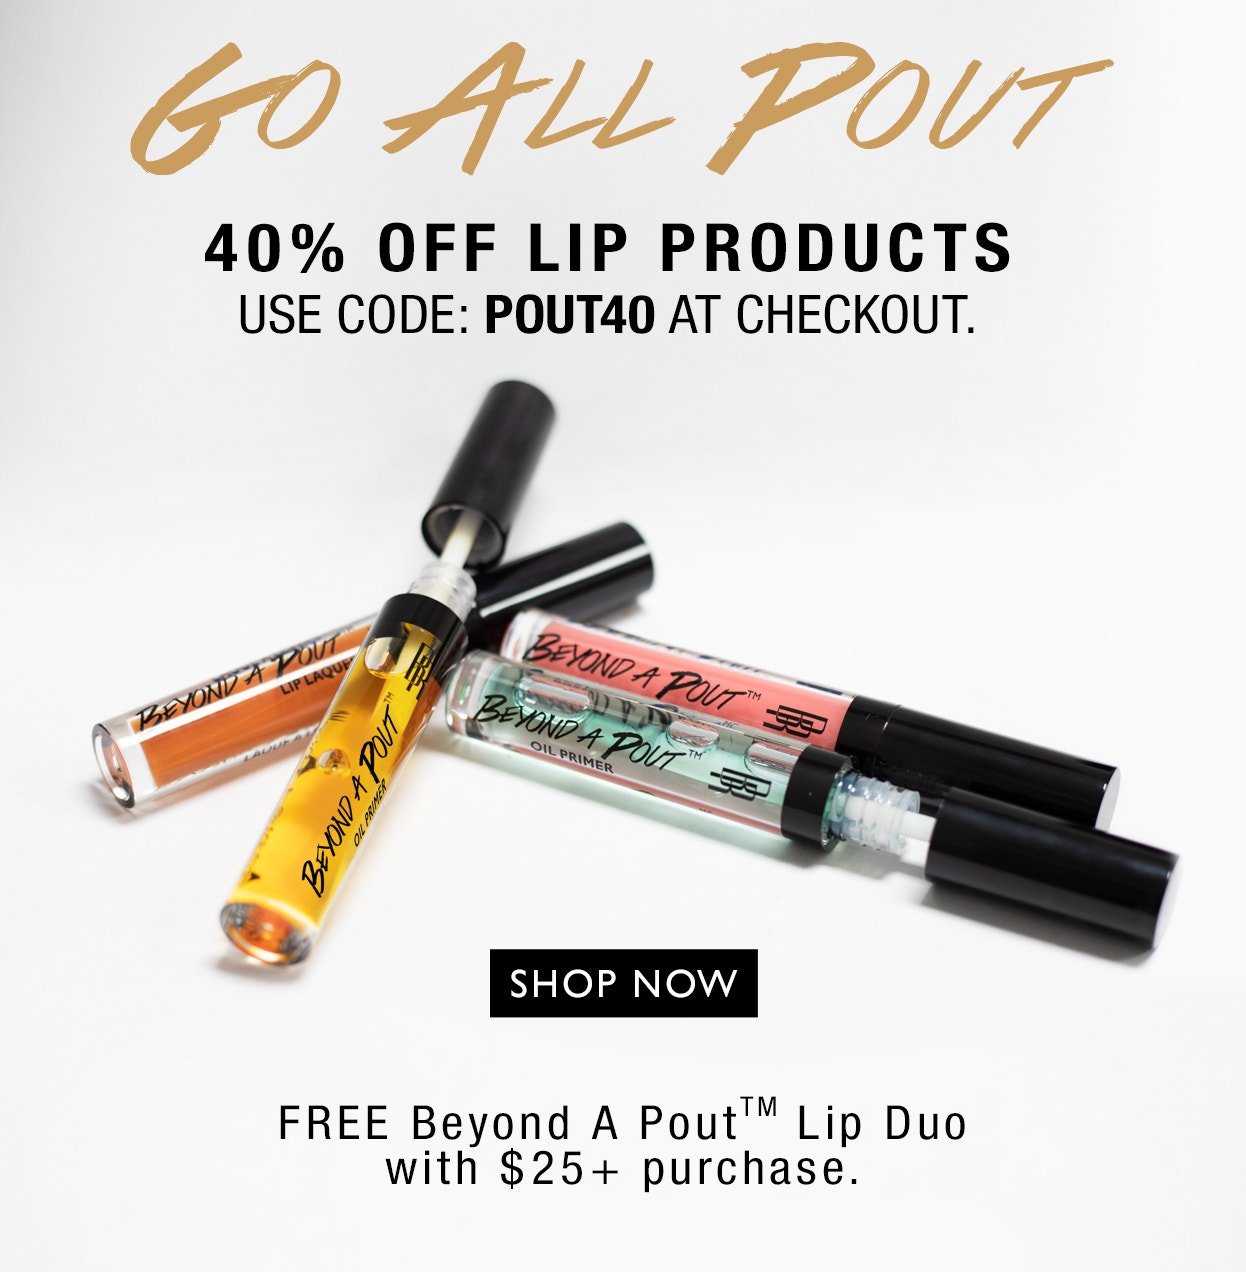 Black Radiance | Go All Pout with 40% Off Lips Use Code: POUT40 + Free Lip Duo with $40 Purchase | Shop Your favorite Lip Gloss, Oils and Lacquers - Products scattered some open with white background